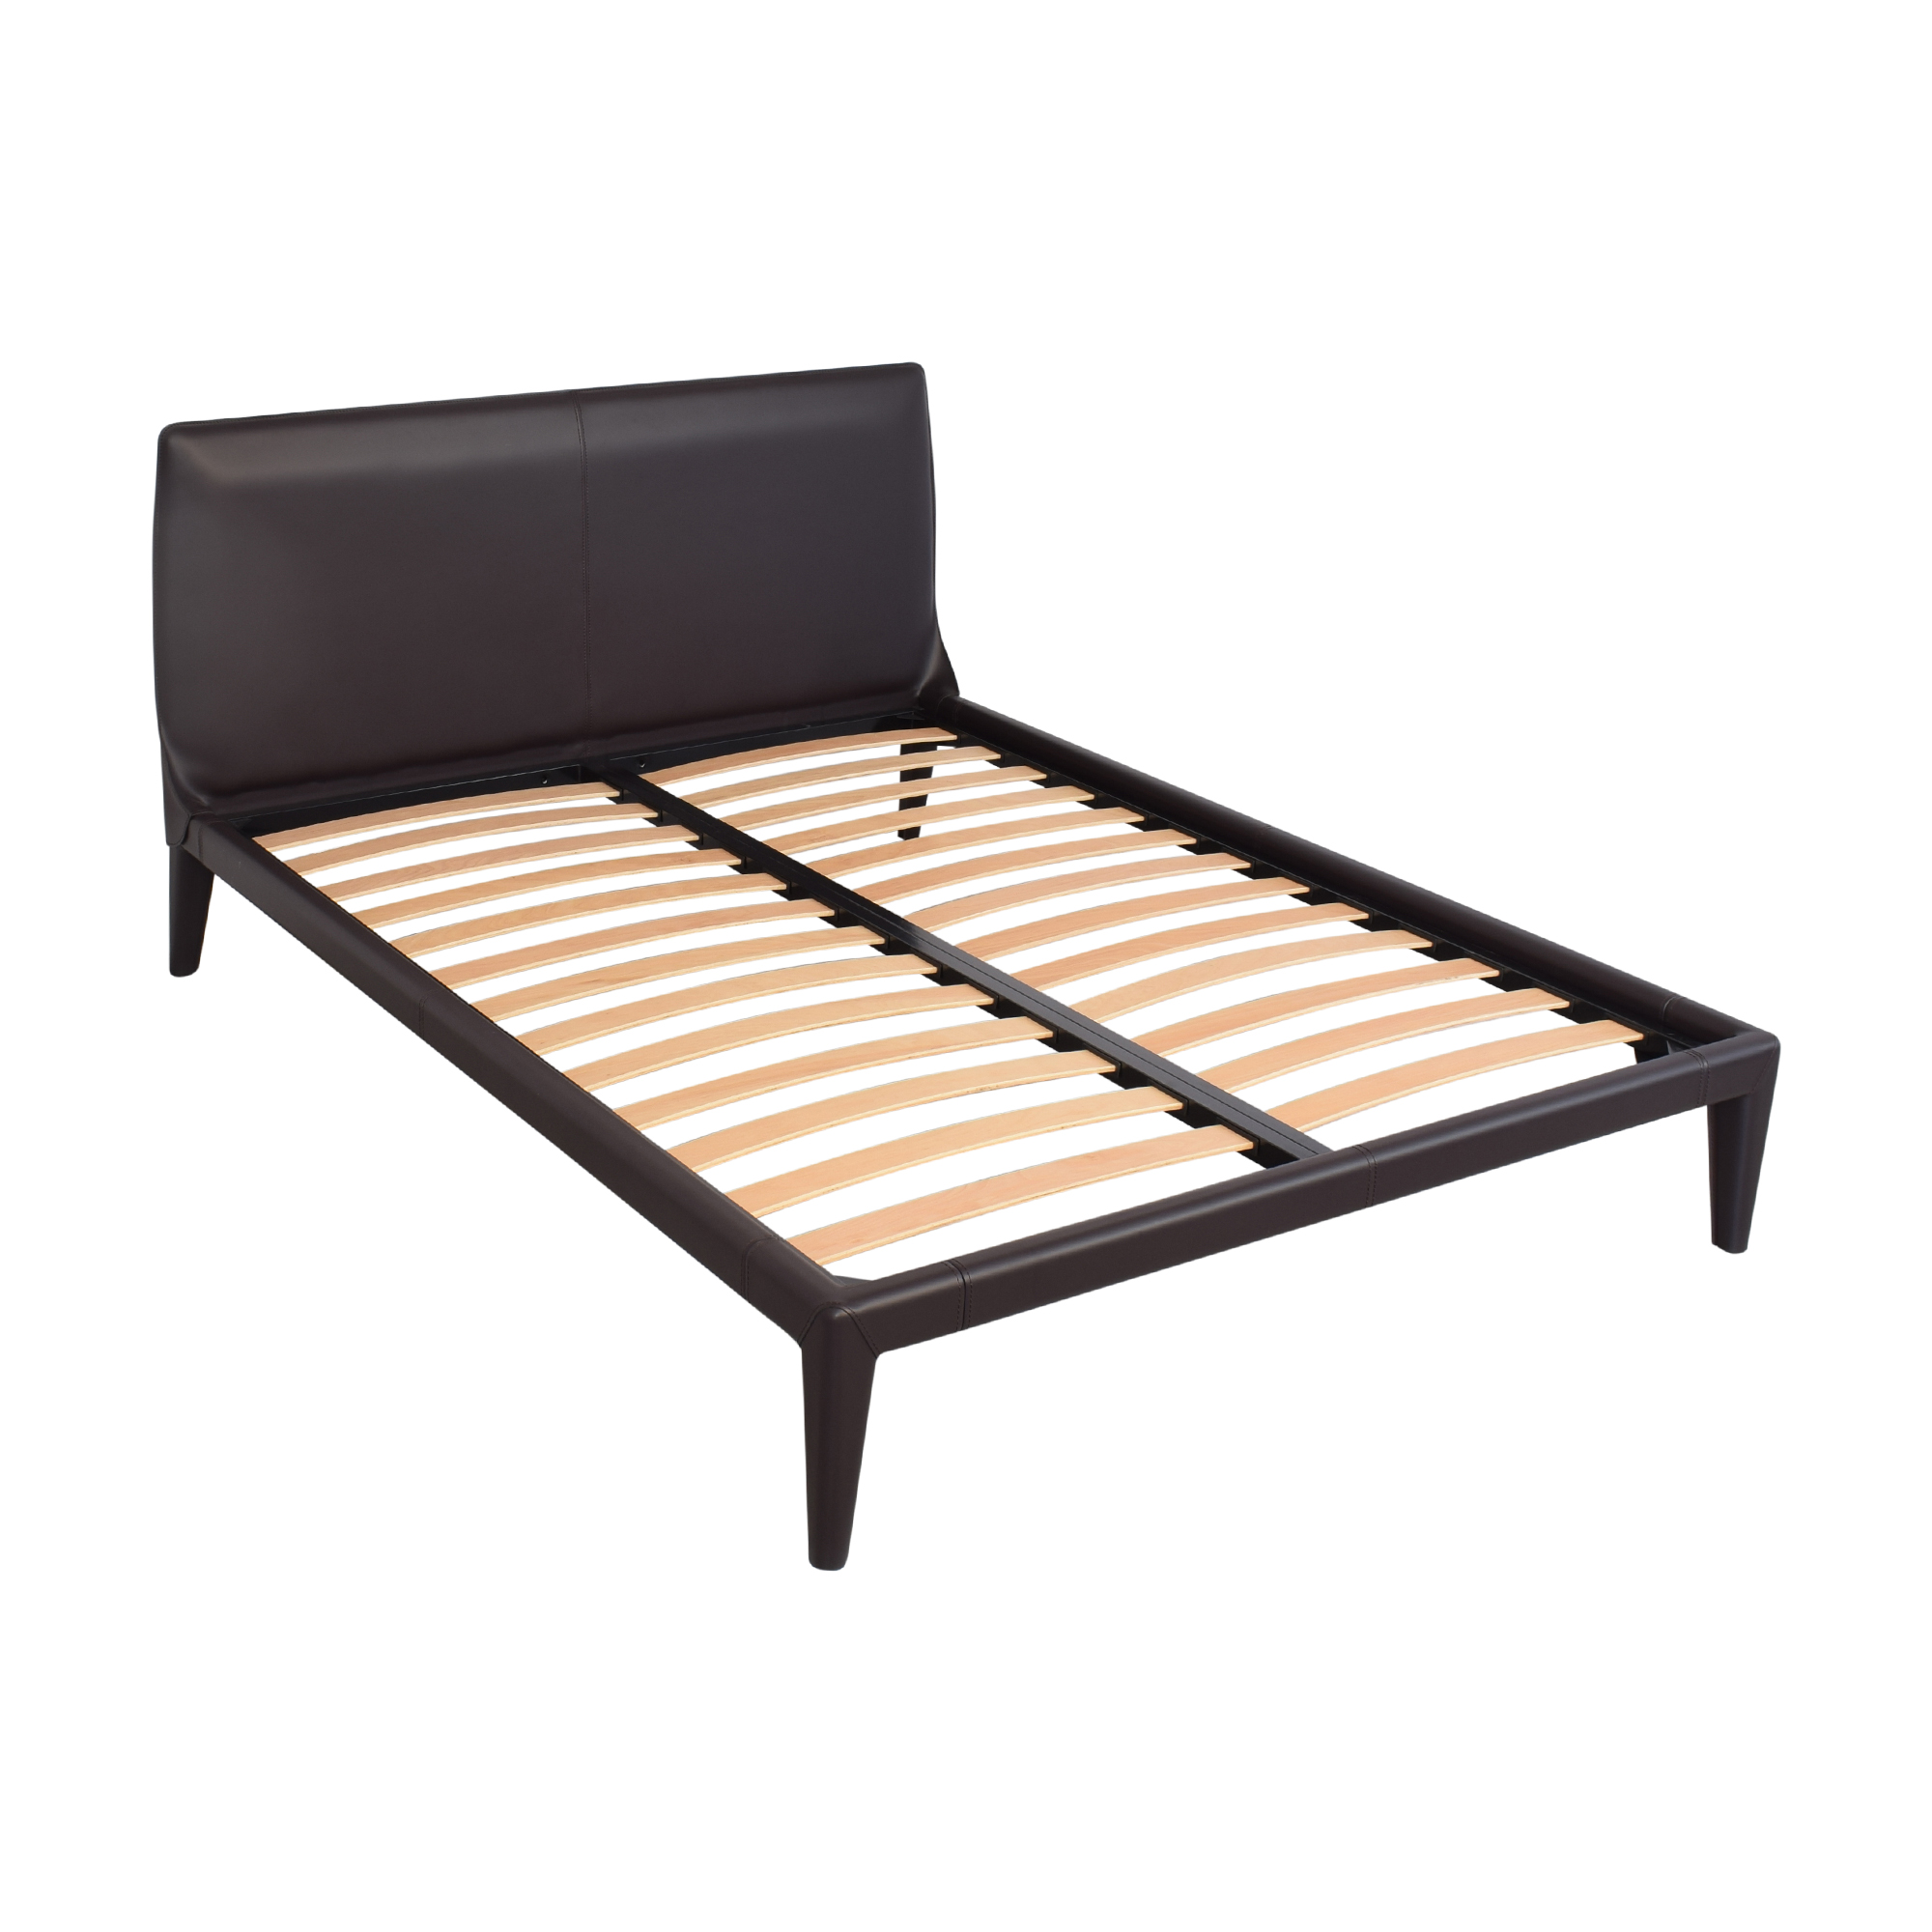 Design Within Reach Design Within Reach Frag Vella Queen Bed used